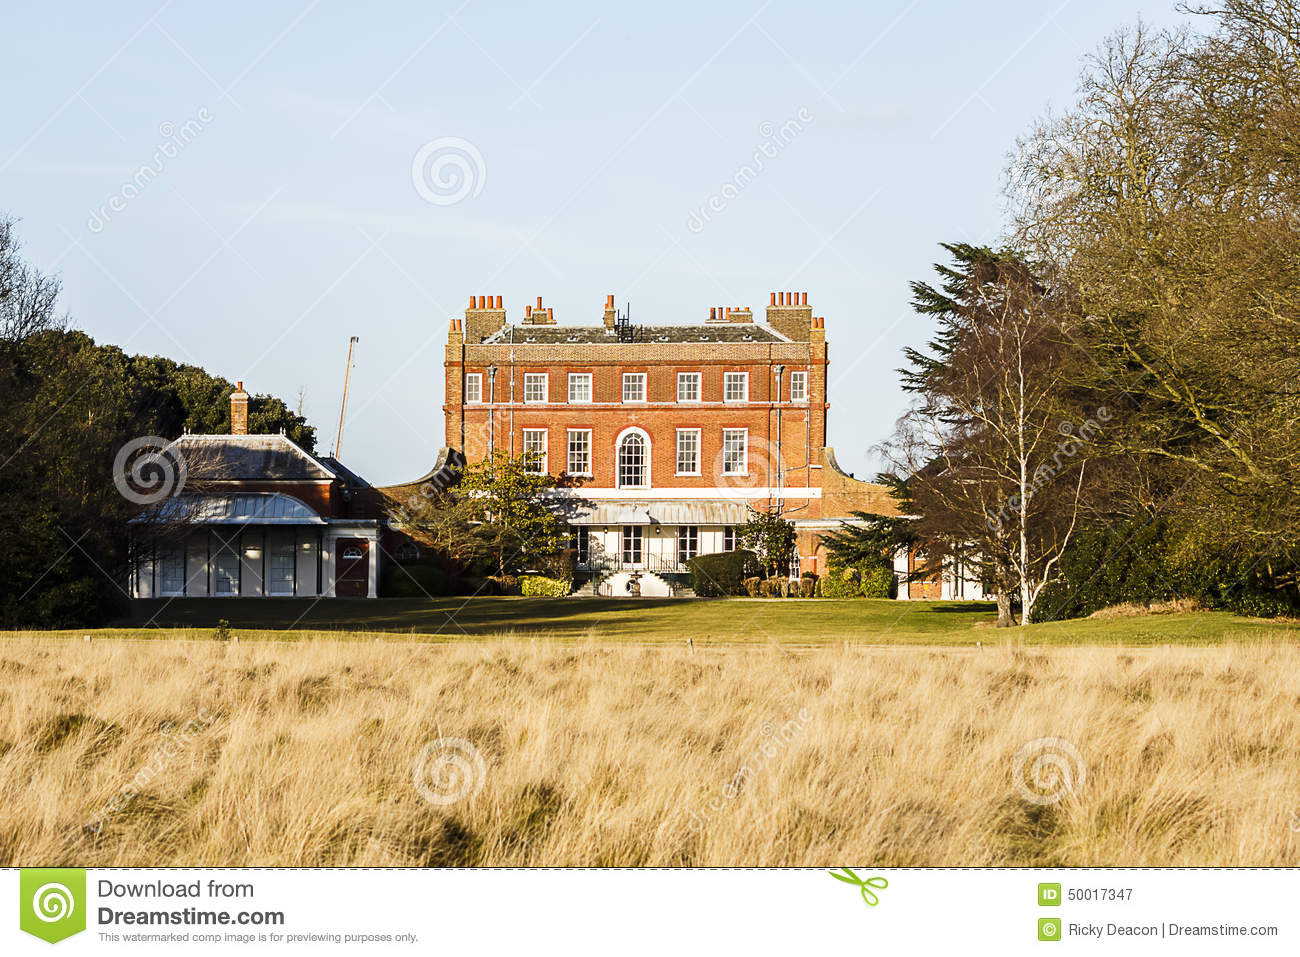 Stock Photo Bushy House Large Mansion Bushy Park Uk Wide Angle Shot Former Royal Residence Located United Kingdom Image50017347 likewise Royalty Free Stock Photo Patterns Lino Image15013415 further Stock Illustration Color Outline House Remodel Power Tools Icons Vector Repair Electric Devices Image47995301 further Stock Photo Dinant Belgium Citadel Church City Image44614689 in addition GIBUR. on house plans with angle